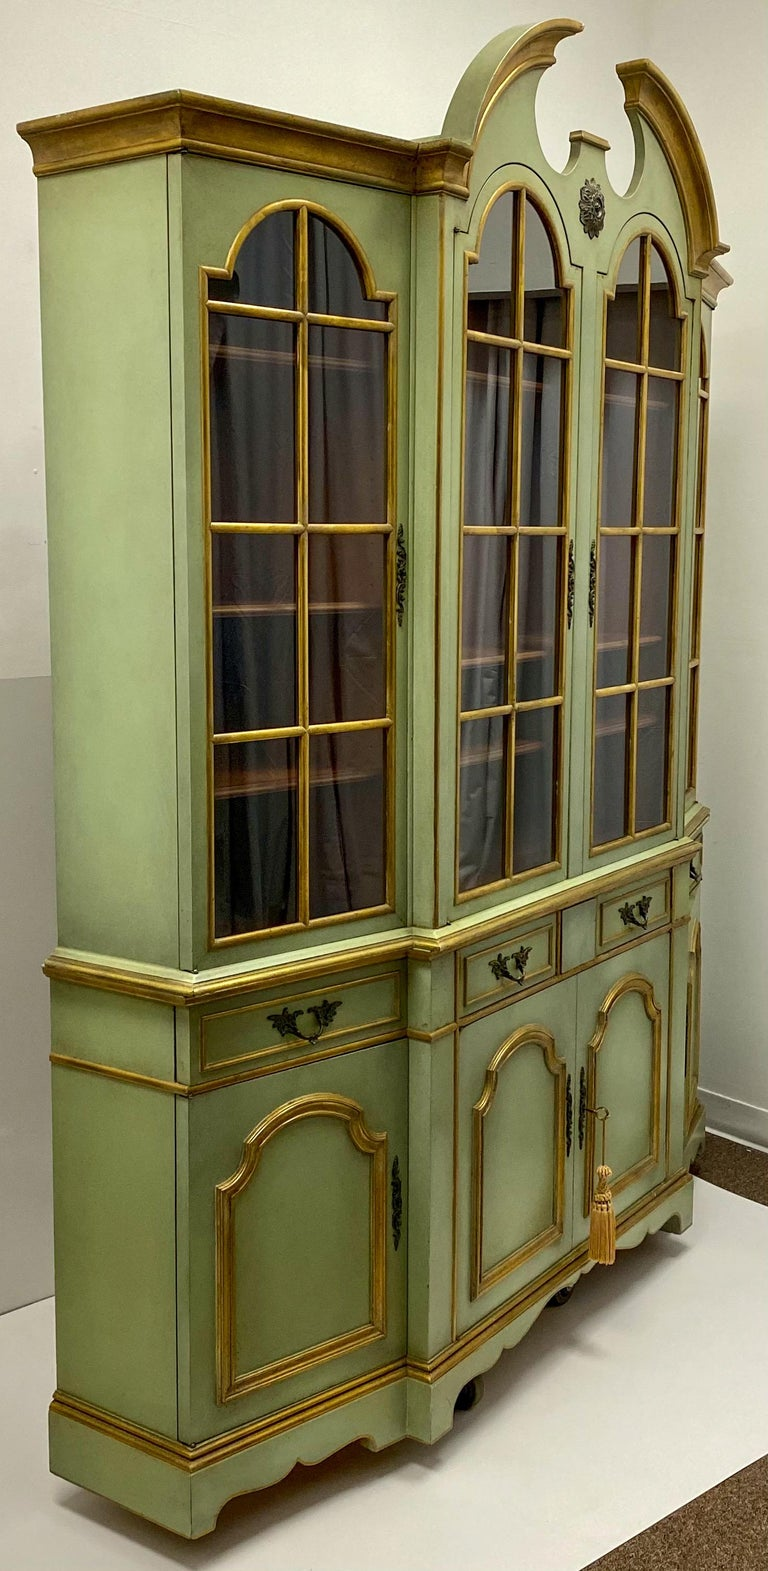 Maslow Freen of New York Chippendale Style Painted Cabinet 1